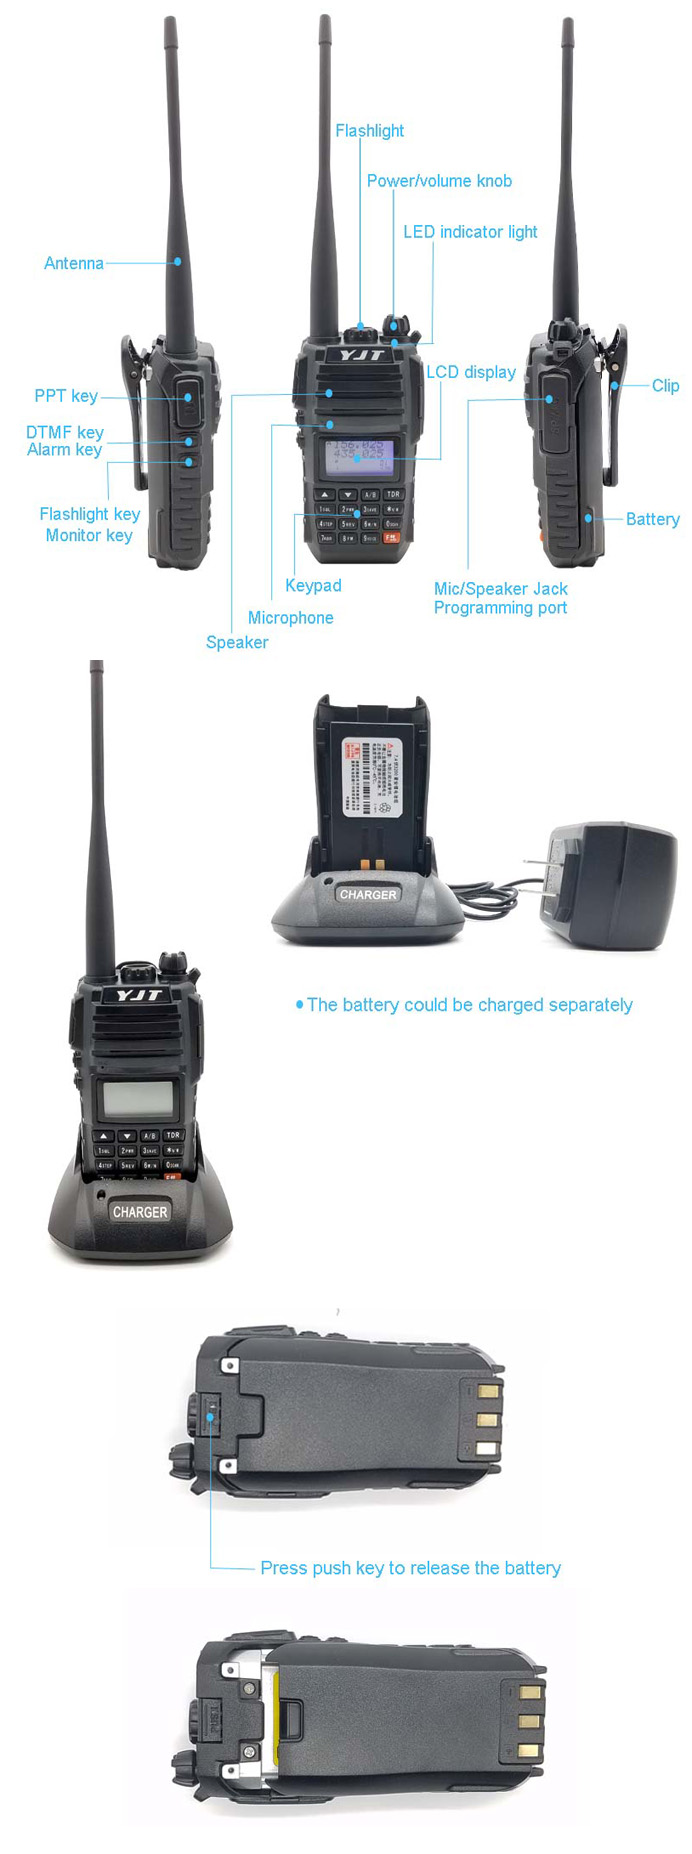 Dual Band Fm Cheap Ham Radio Transceiver Long Range Vhf Uhf Military  Handheld Radio - Buy Handheld Radio,Handheld Military Radio,Radio Vhf Uhf  Product